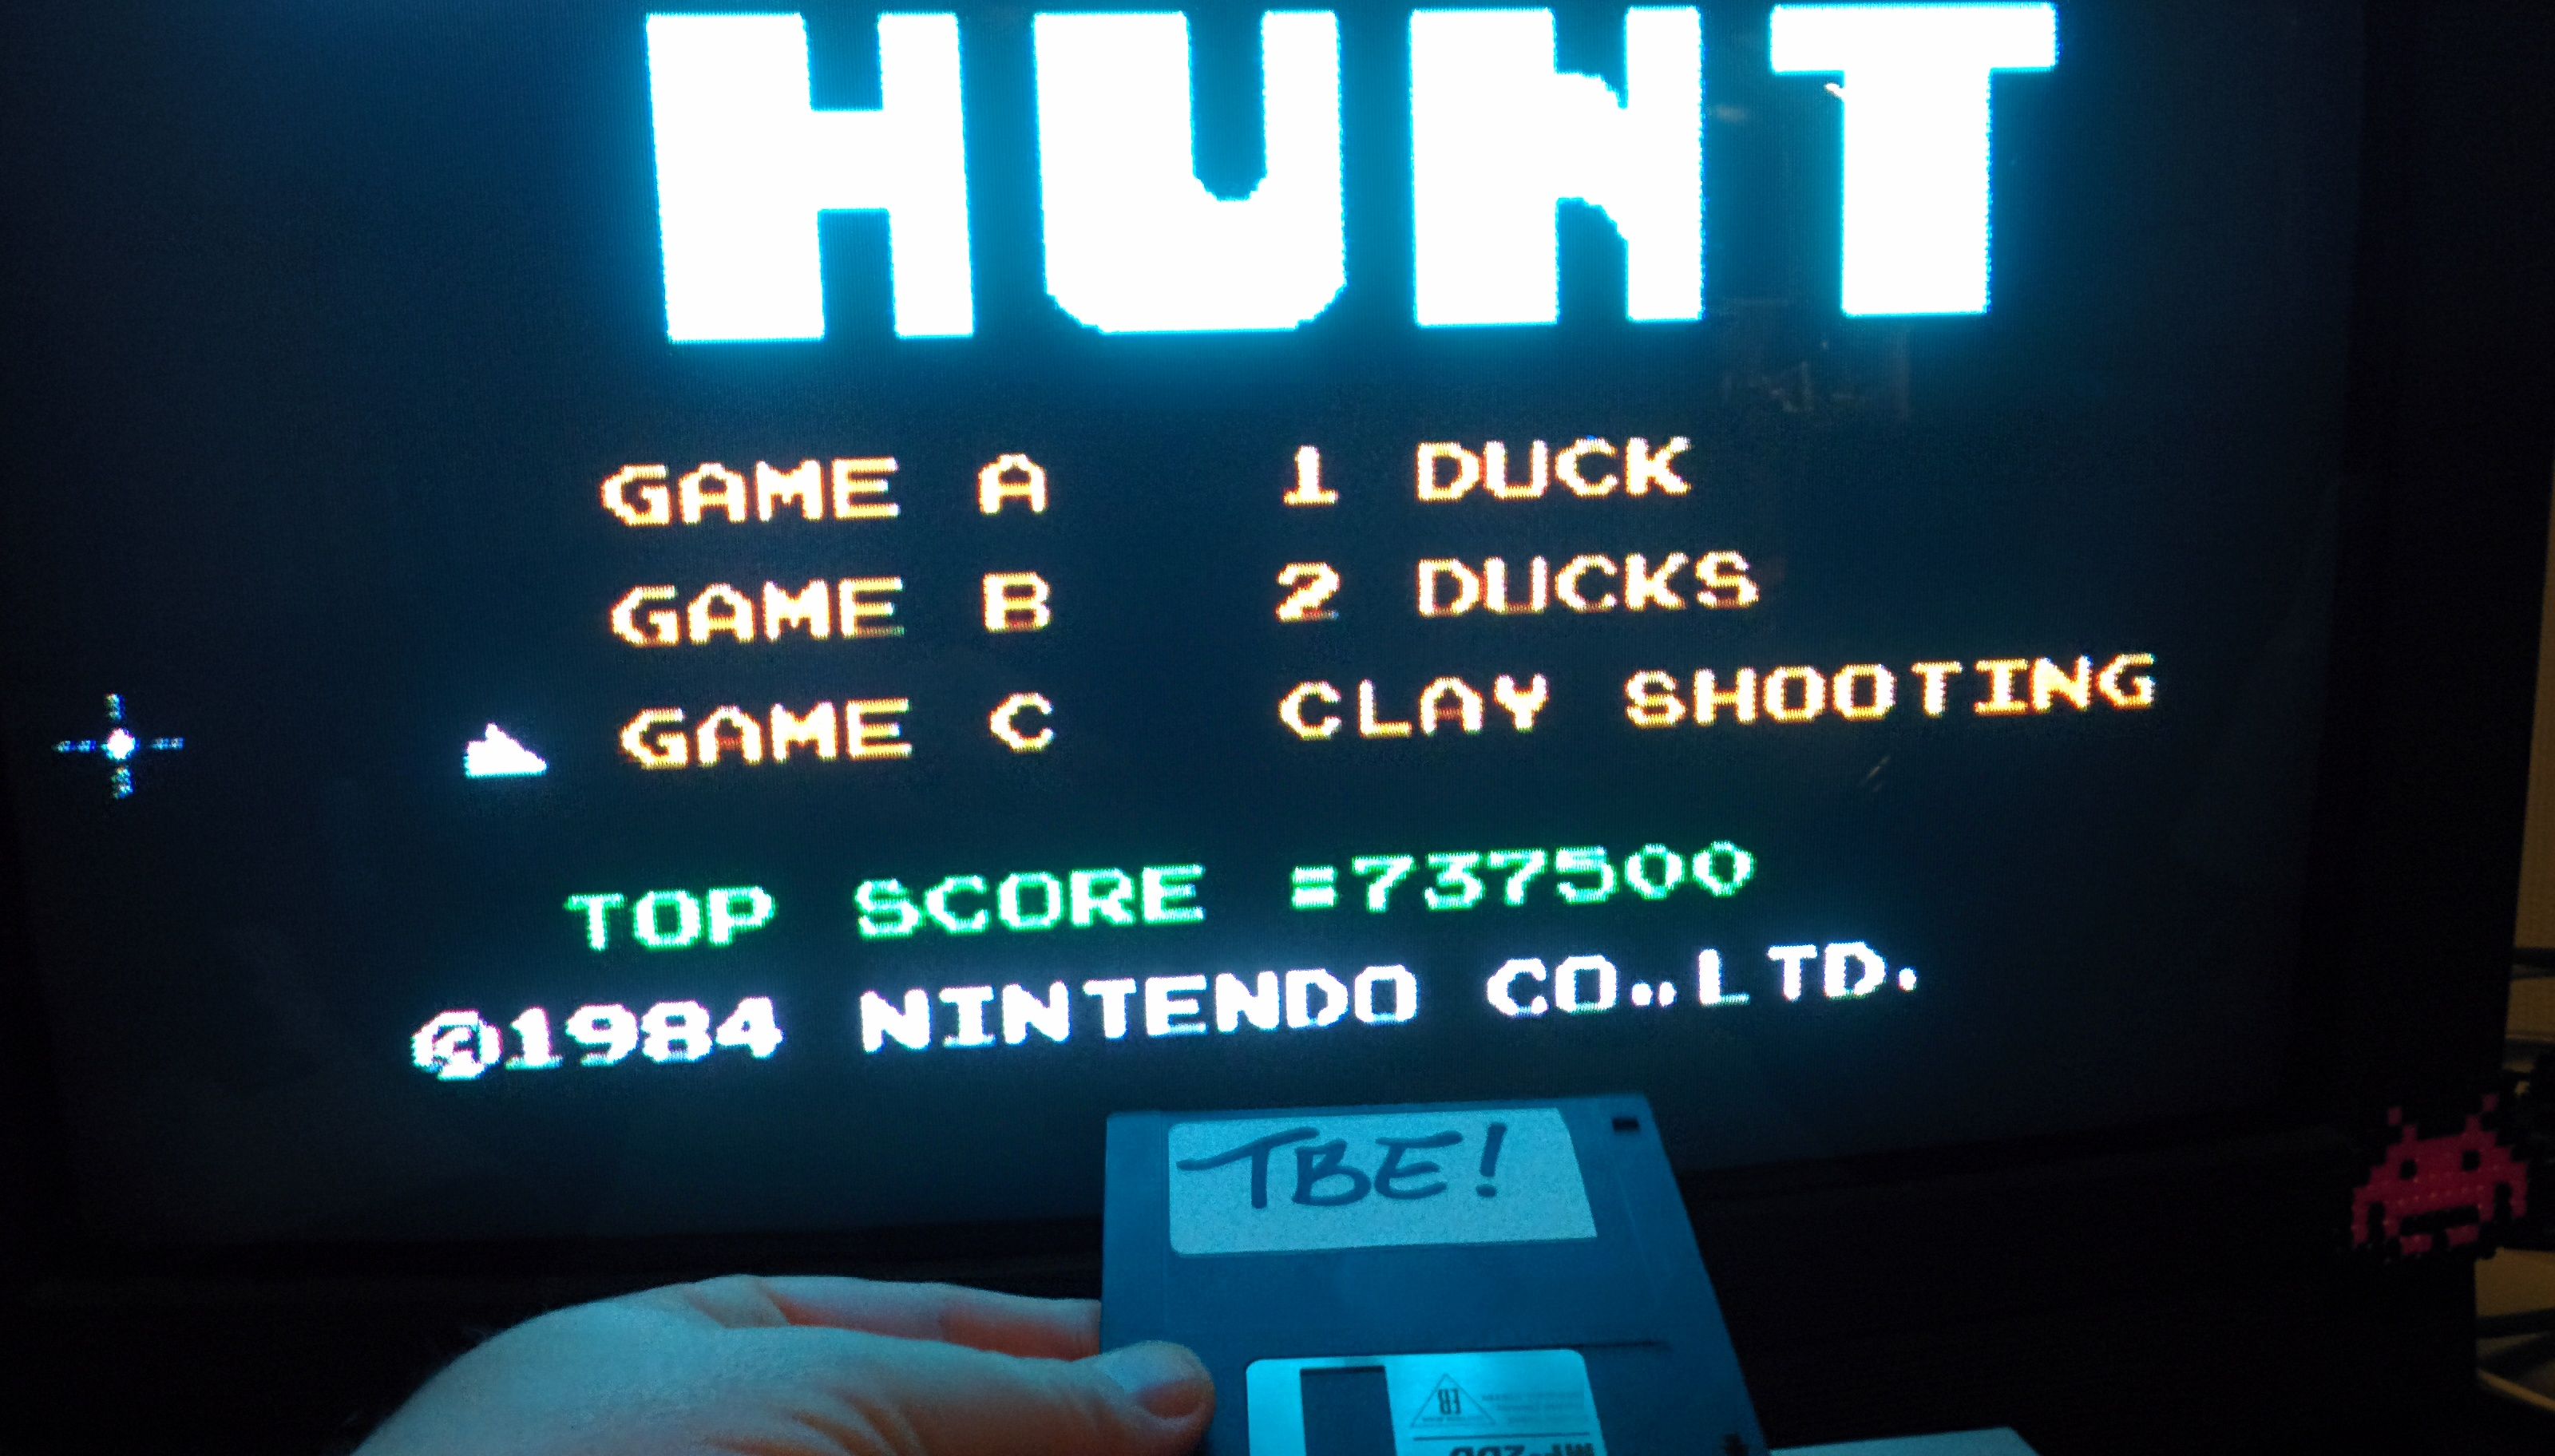 Sixx: Duck Hunt: Clay Pigeon [Any Distance] (NES/Famicom Emulated) 737,500 points on 2014-11-19 01:02:24